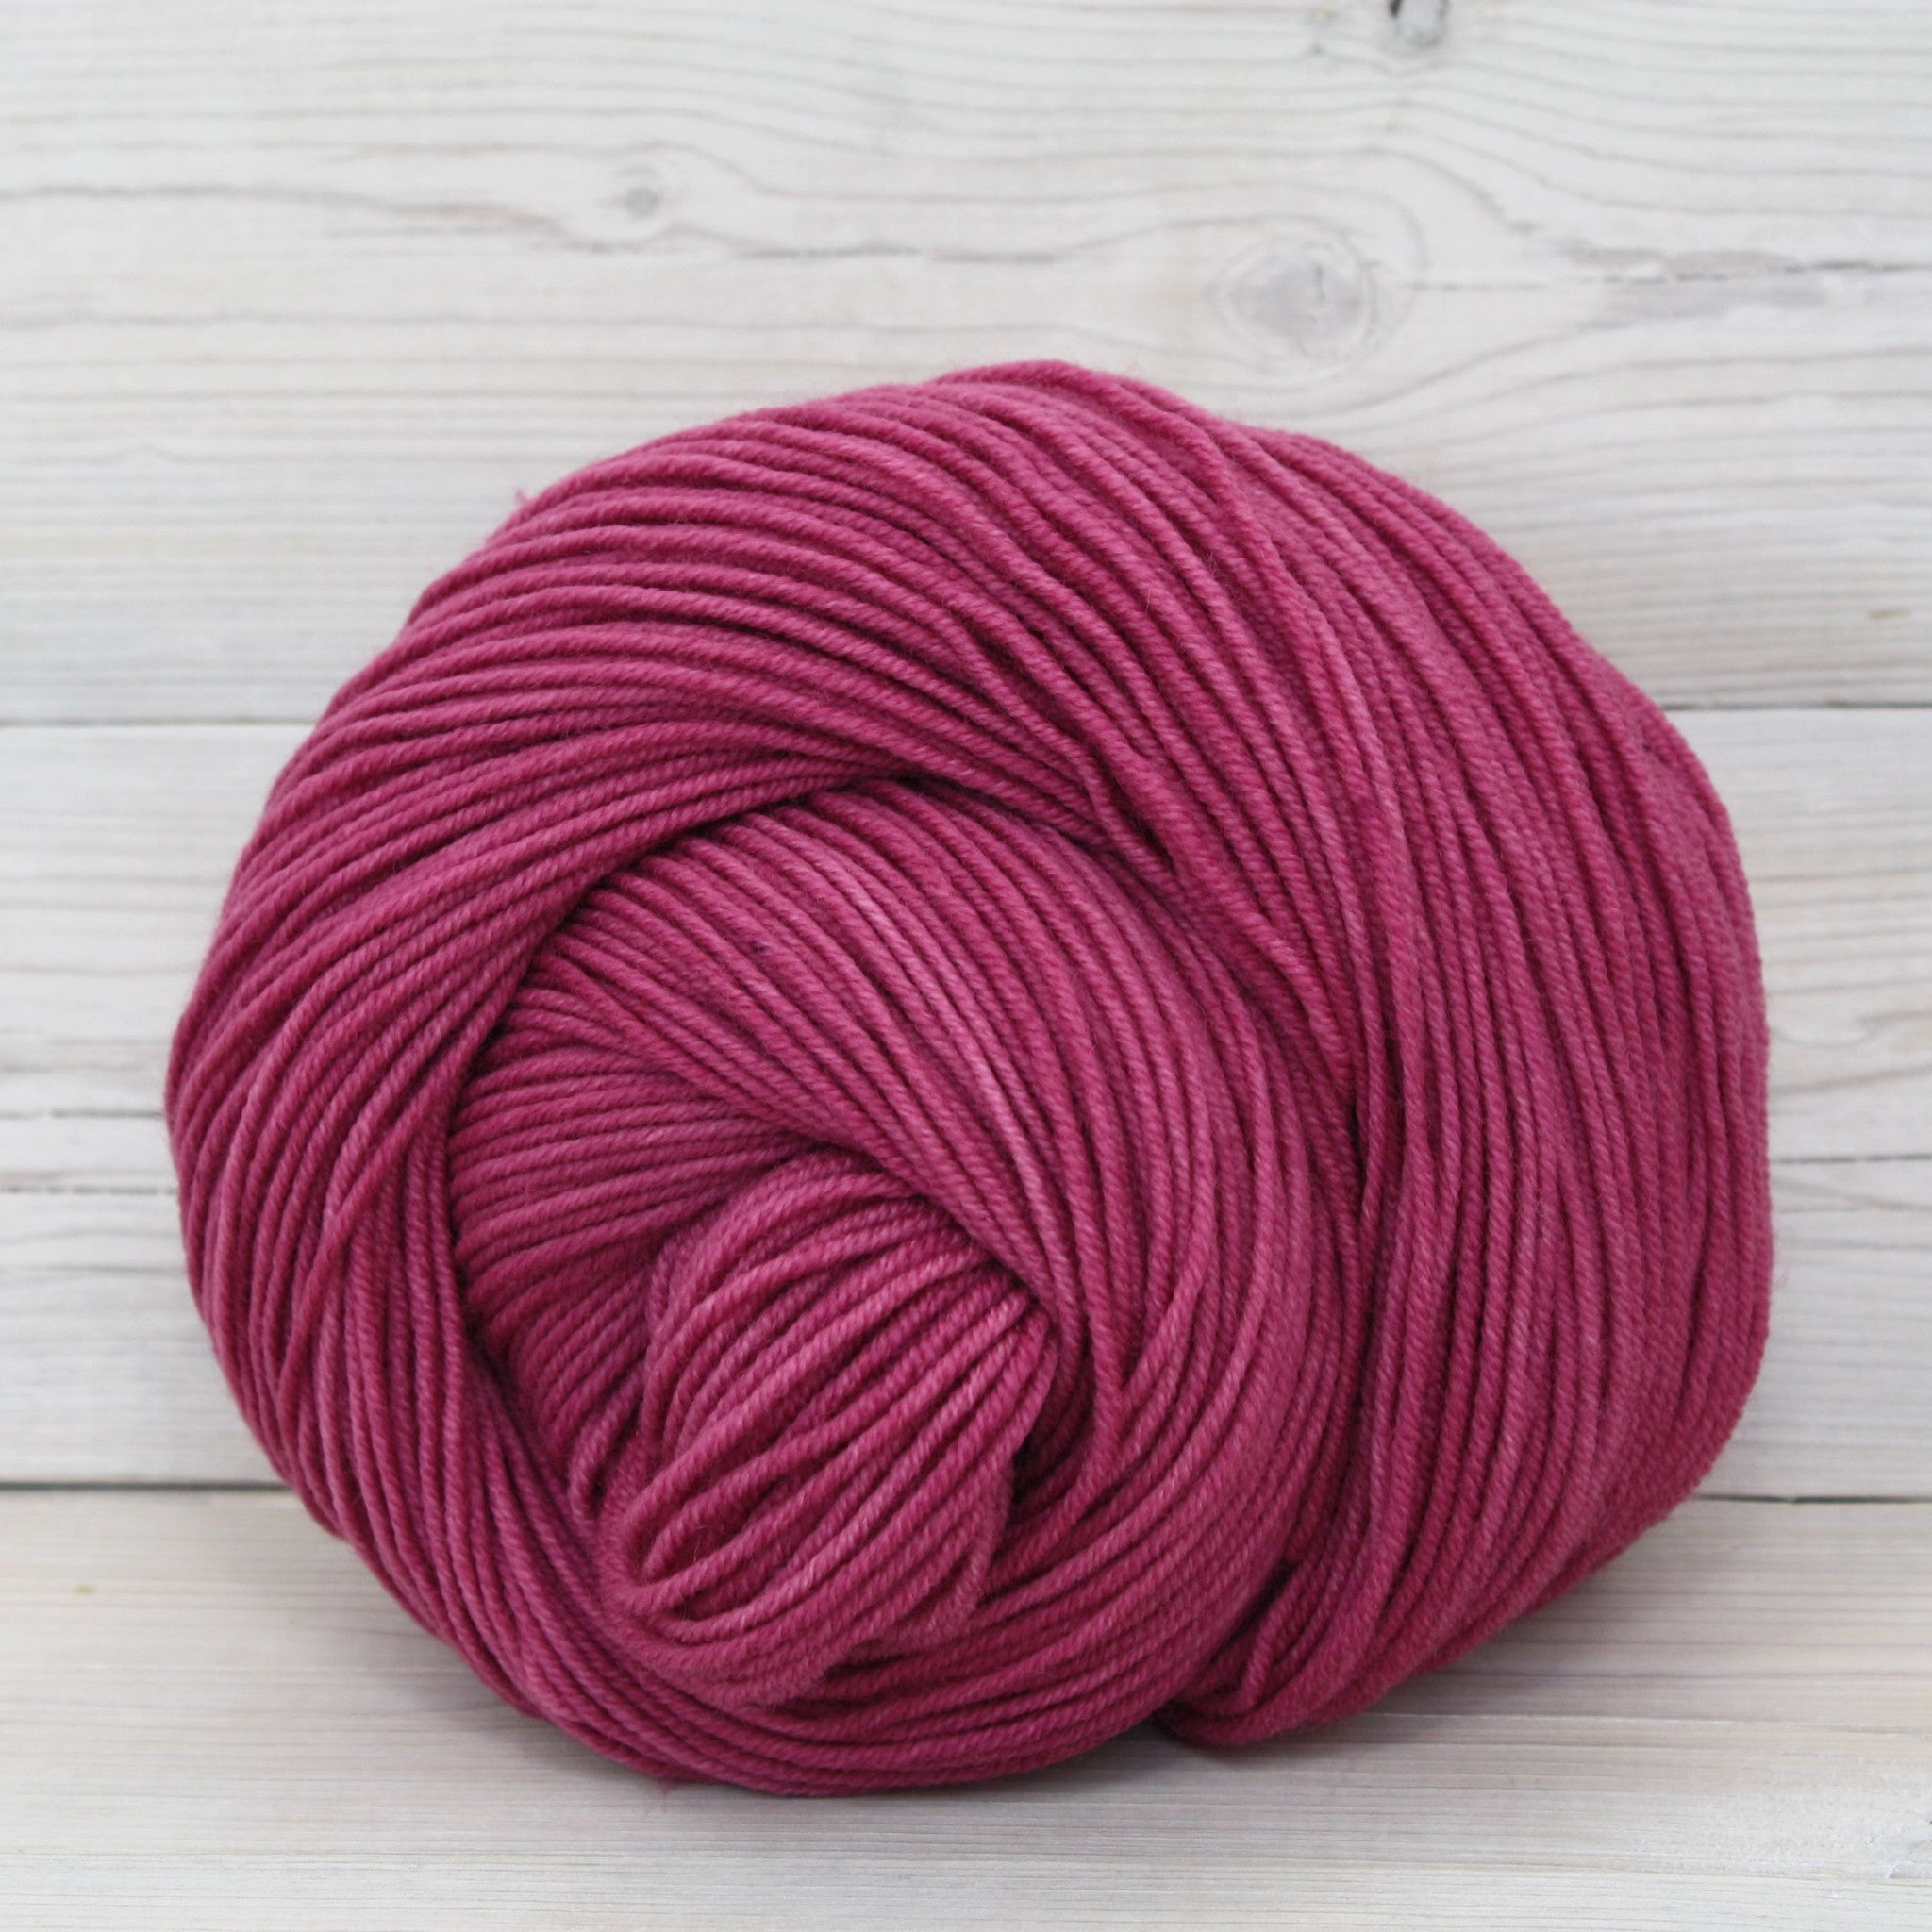 Luna Grey Fiber Arts Aspen Sport Yarn | Colorway: Elderberry